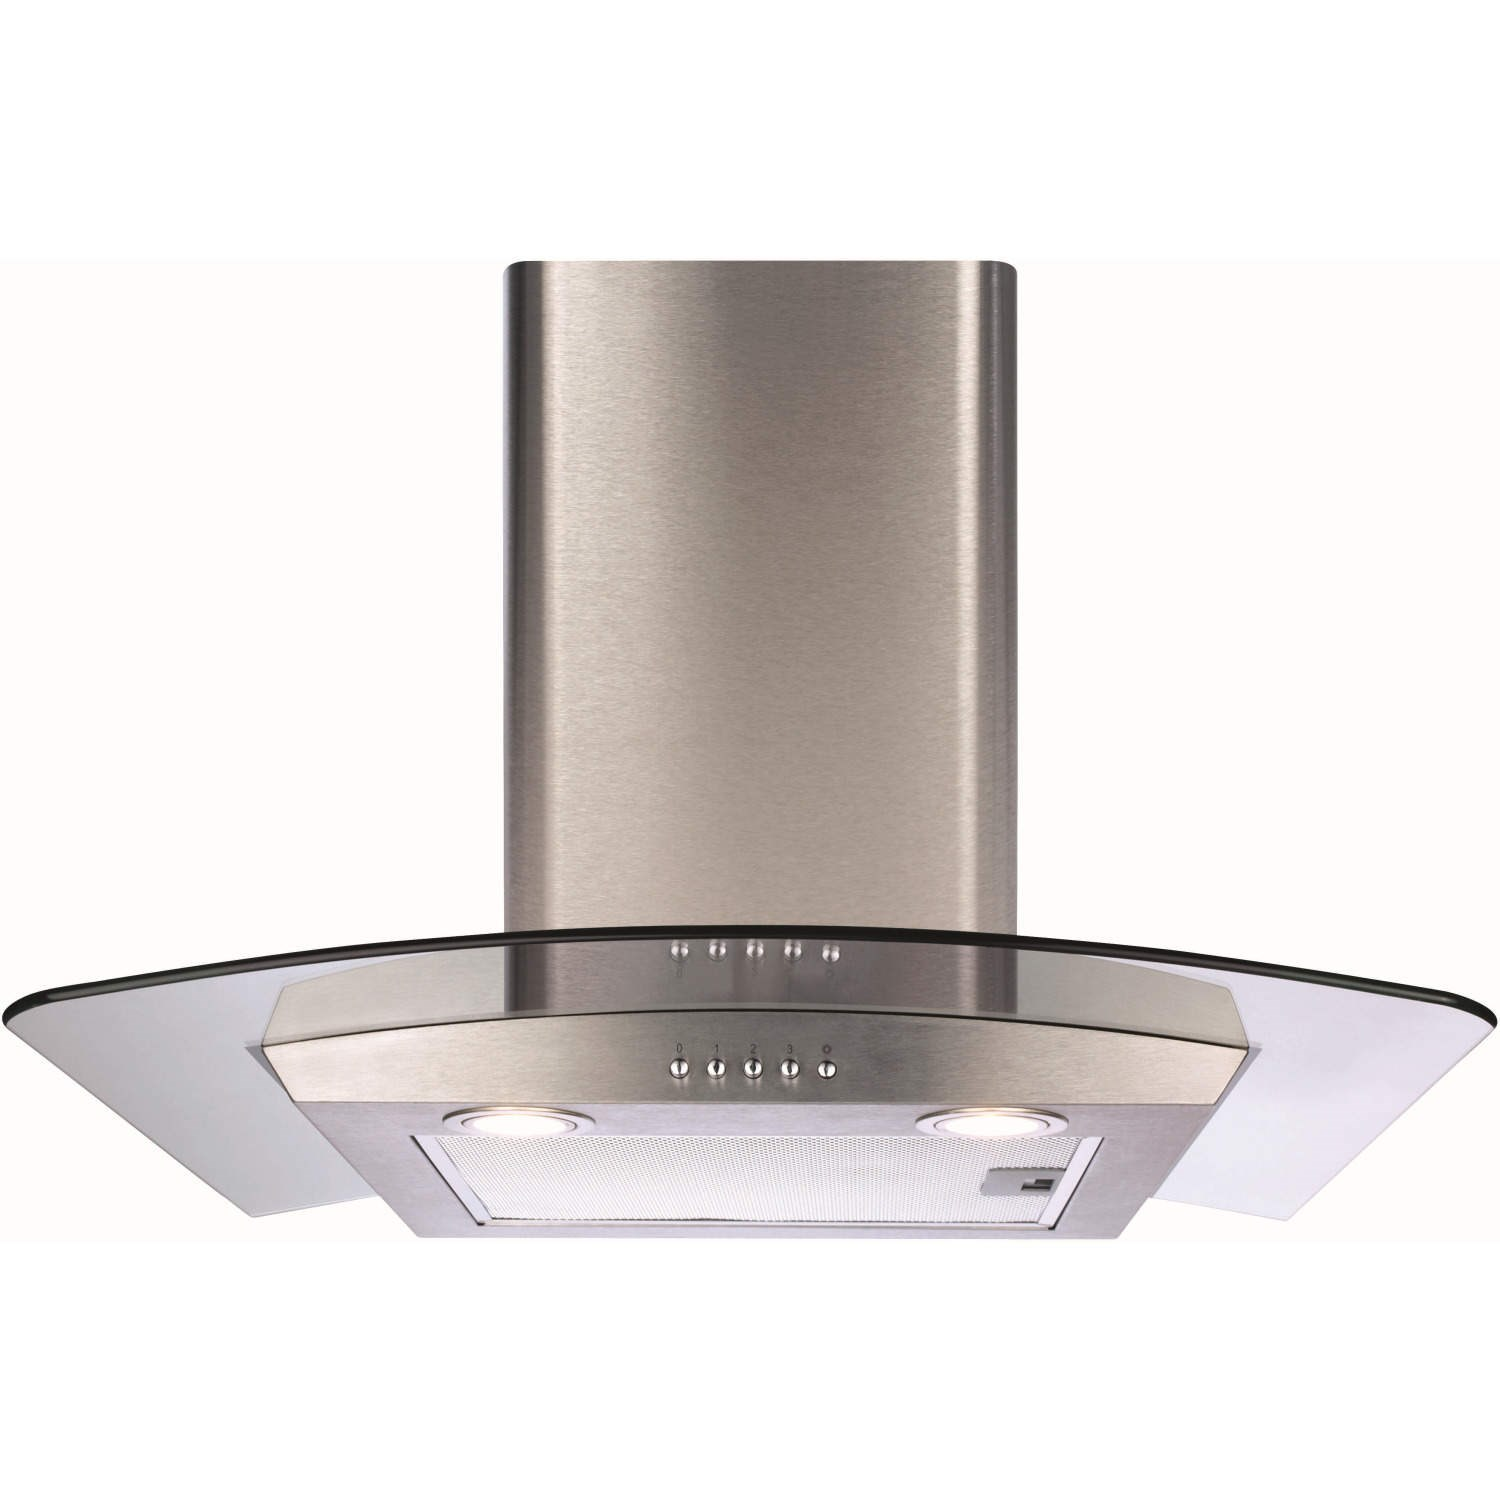 Cooker Hoods Stainless Steel ~ Cda ecp ss curved glass cm chimney cooker hood